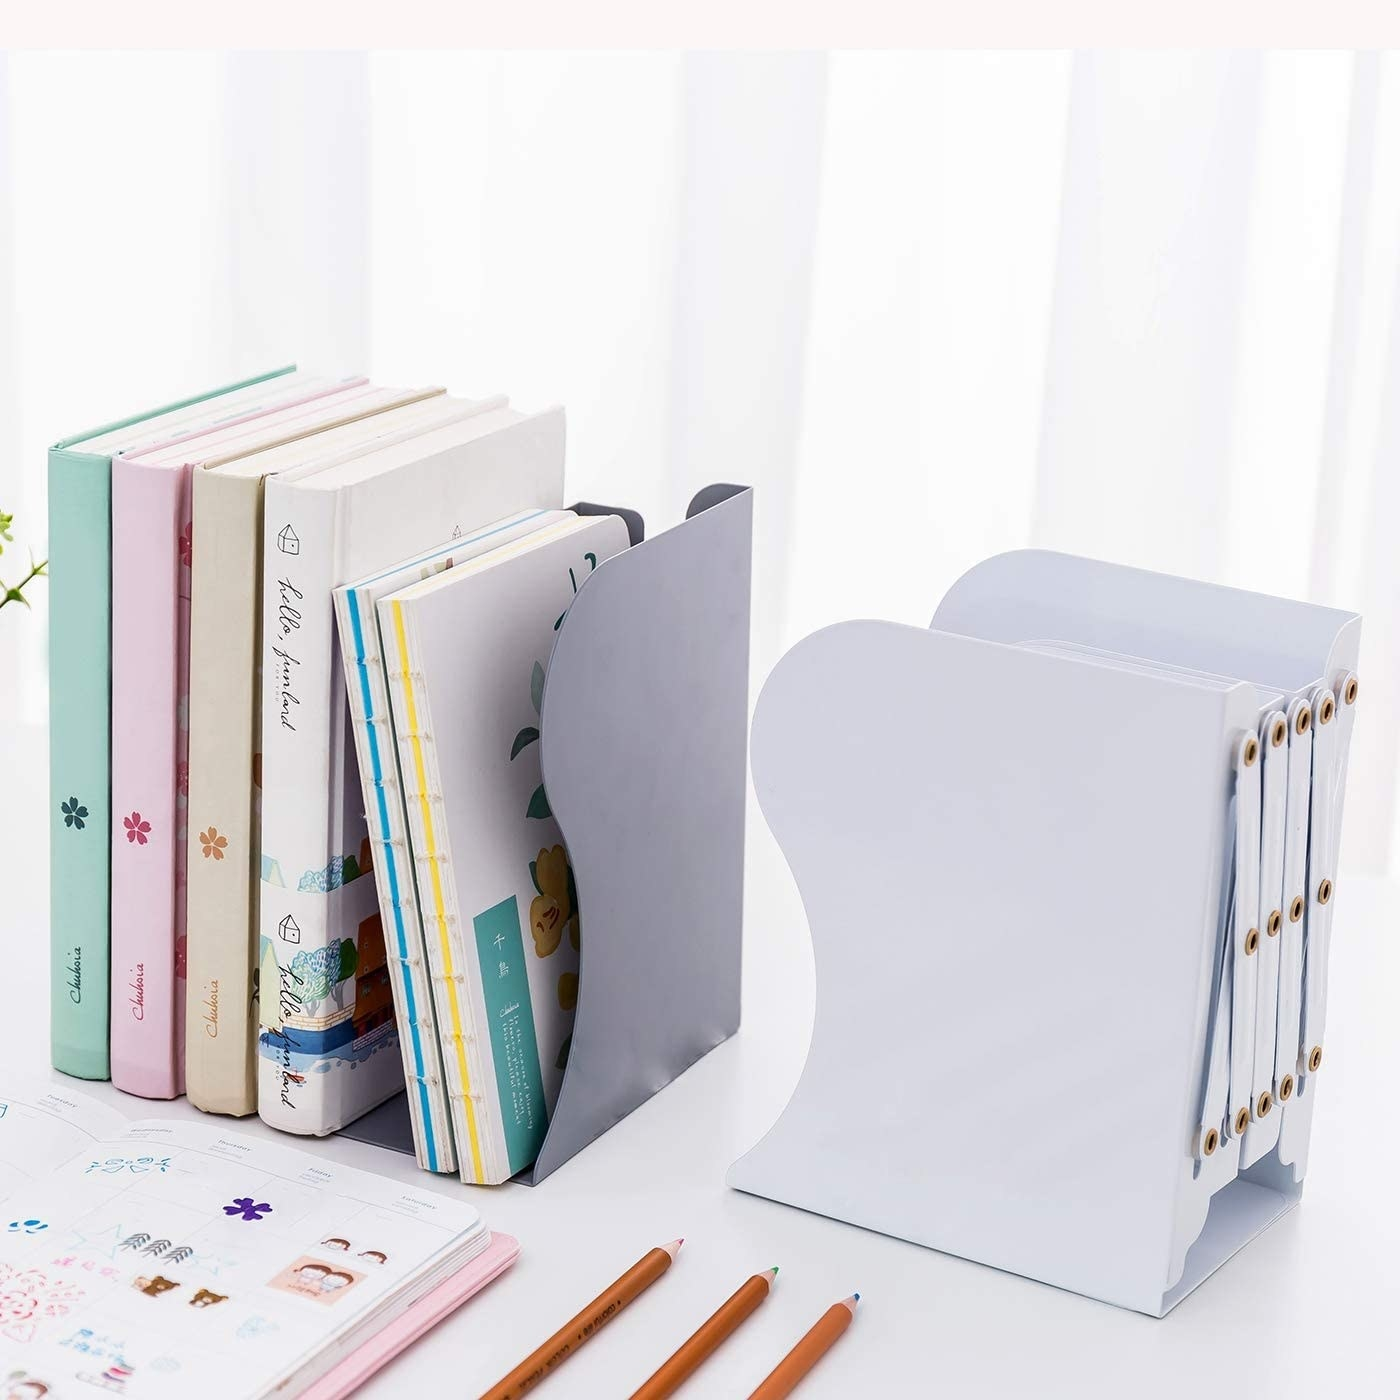 A set of extendable bookends stocked with cookbooks and journals